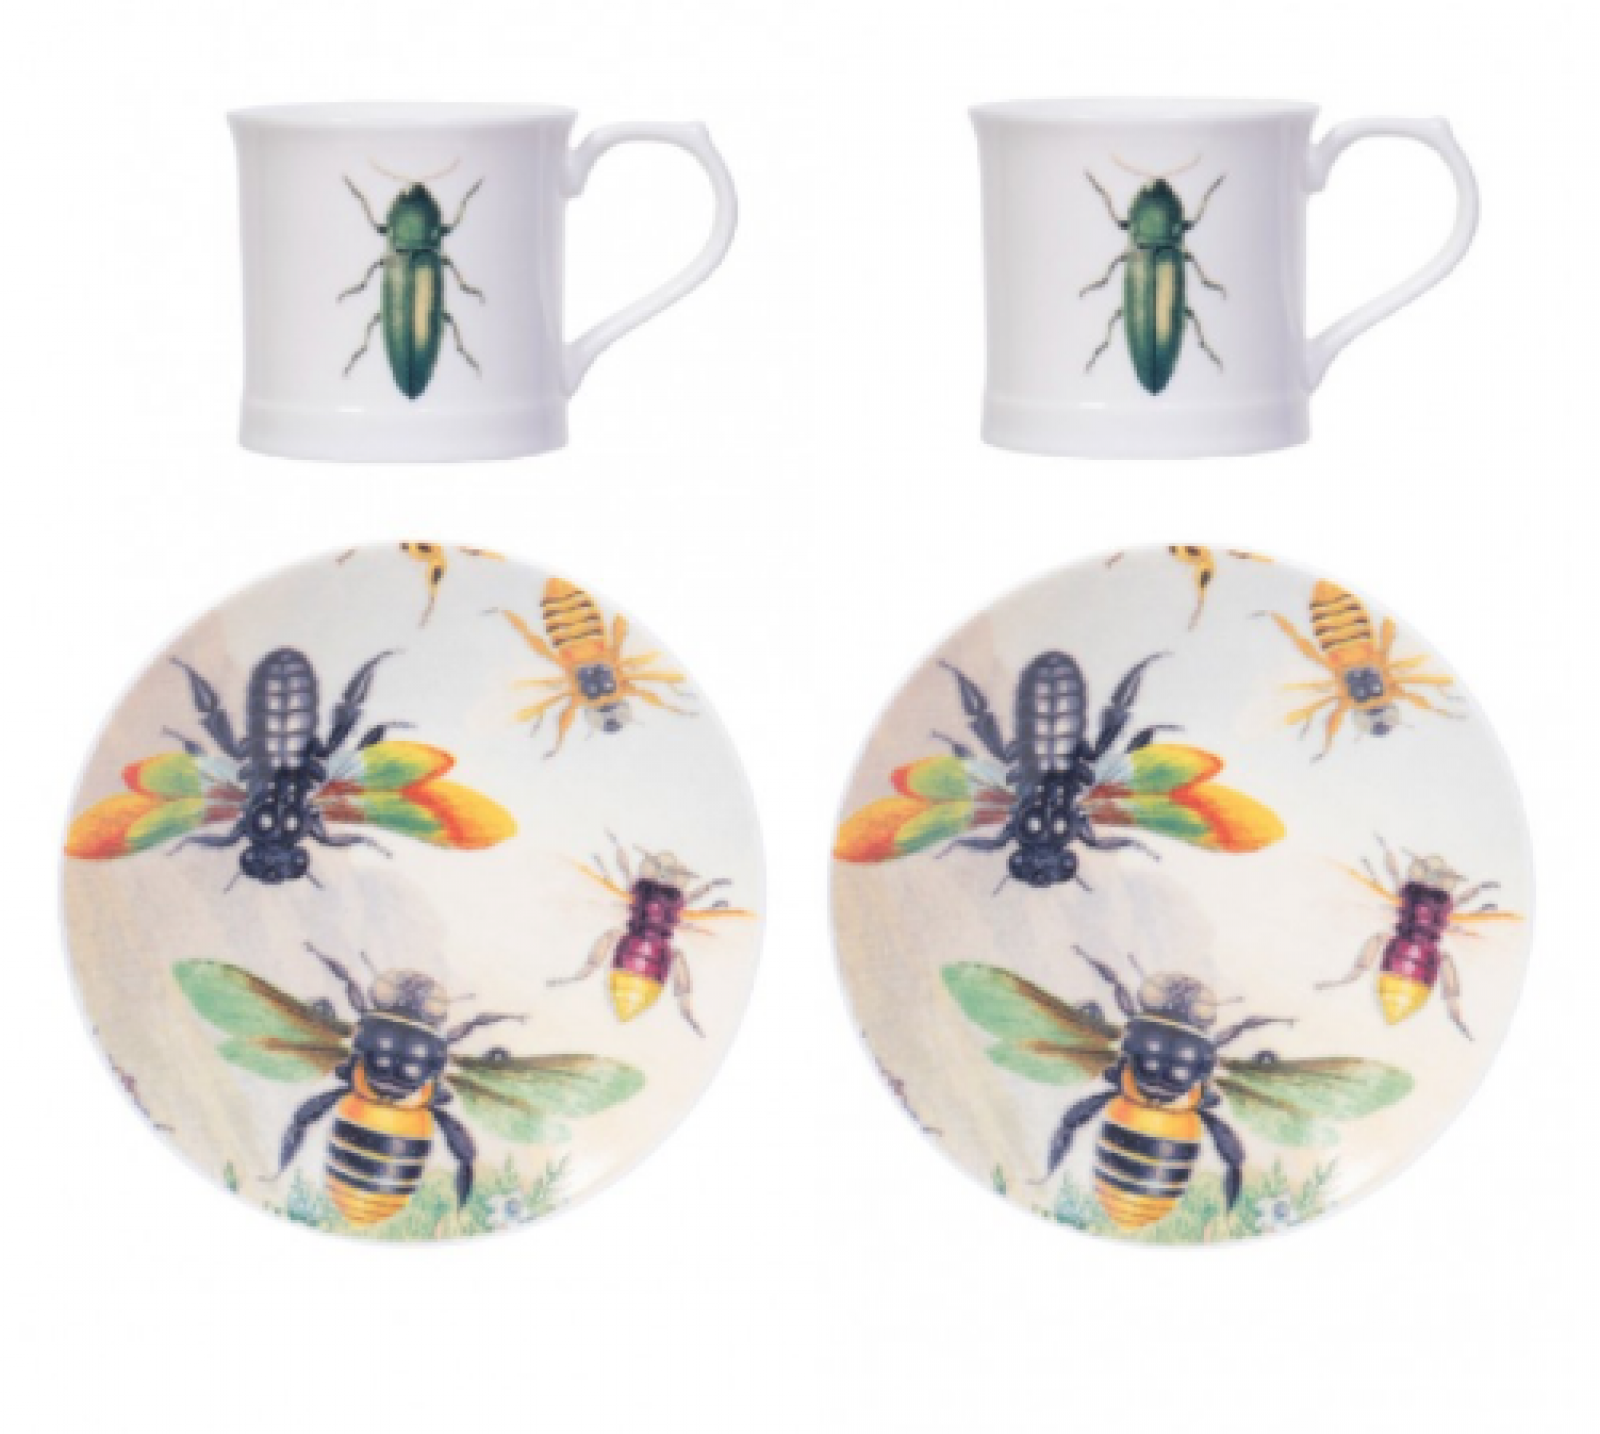 Green Beetle Espresso Set